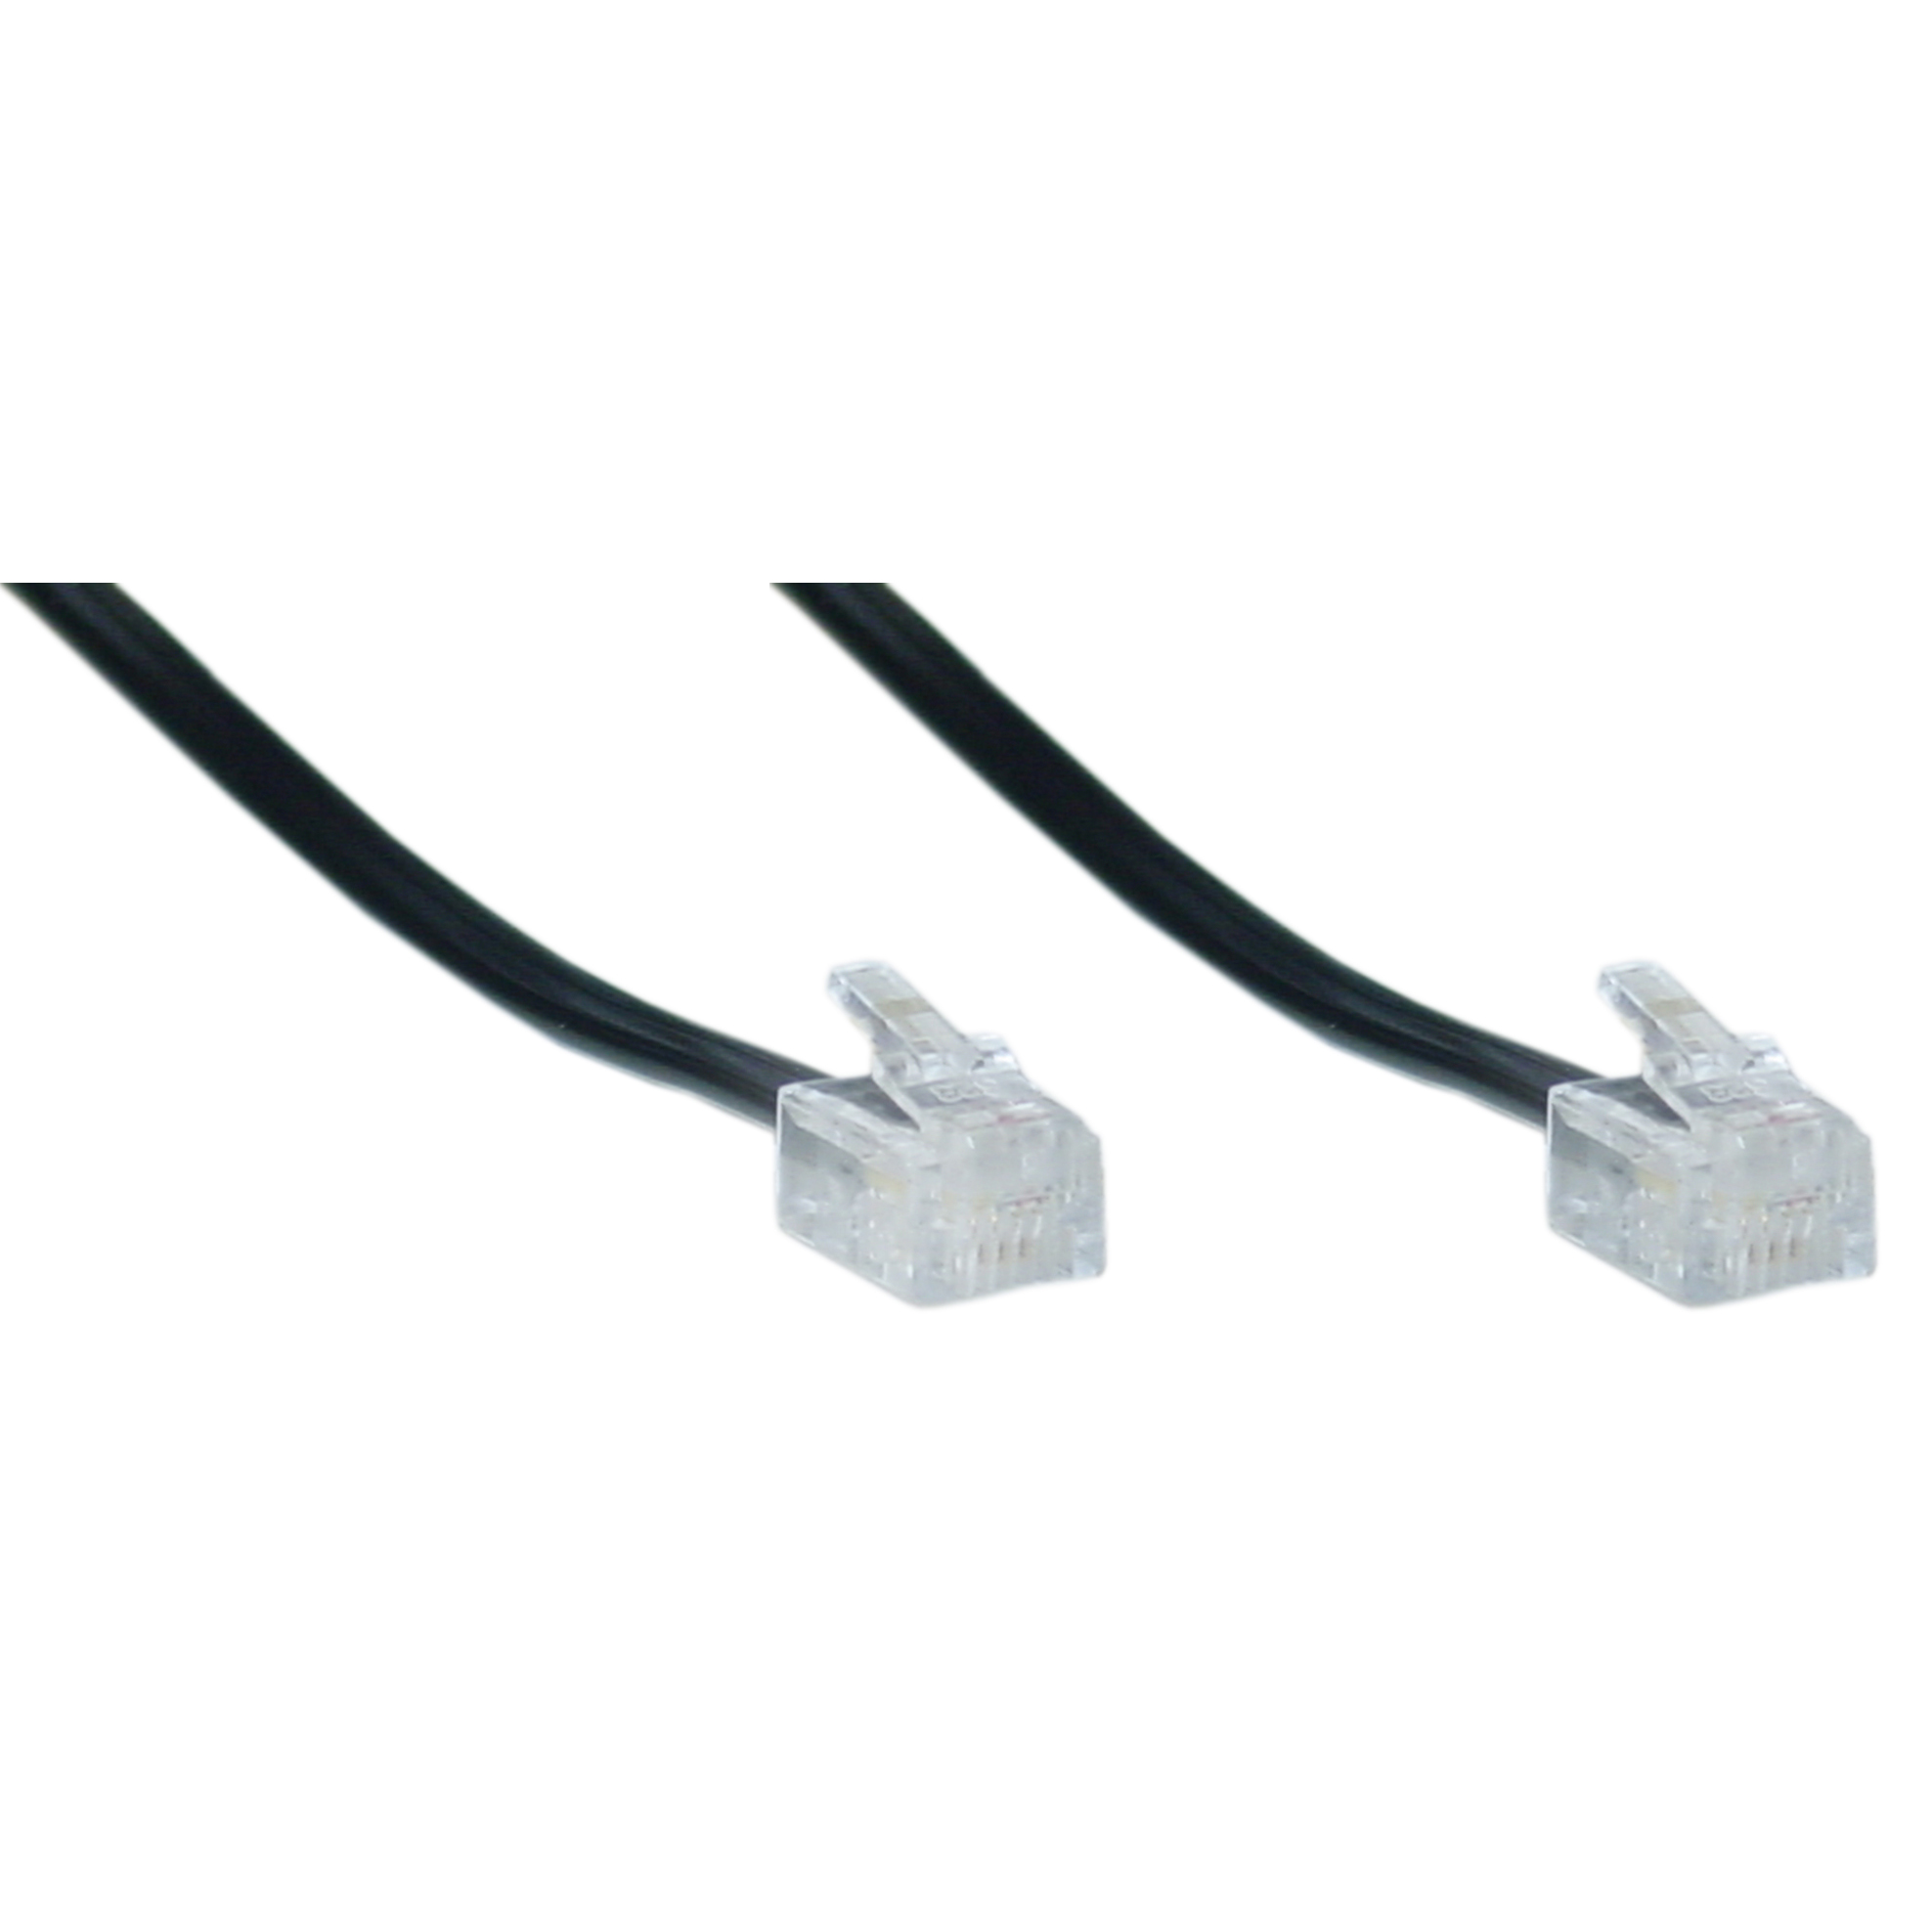 6 Pin To 4 Pin Firewire Cable